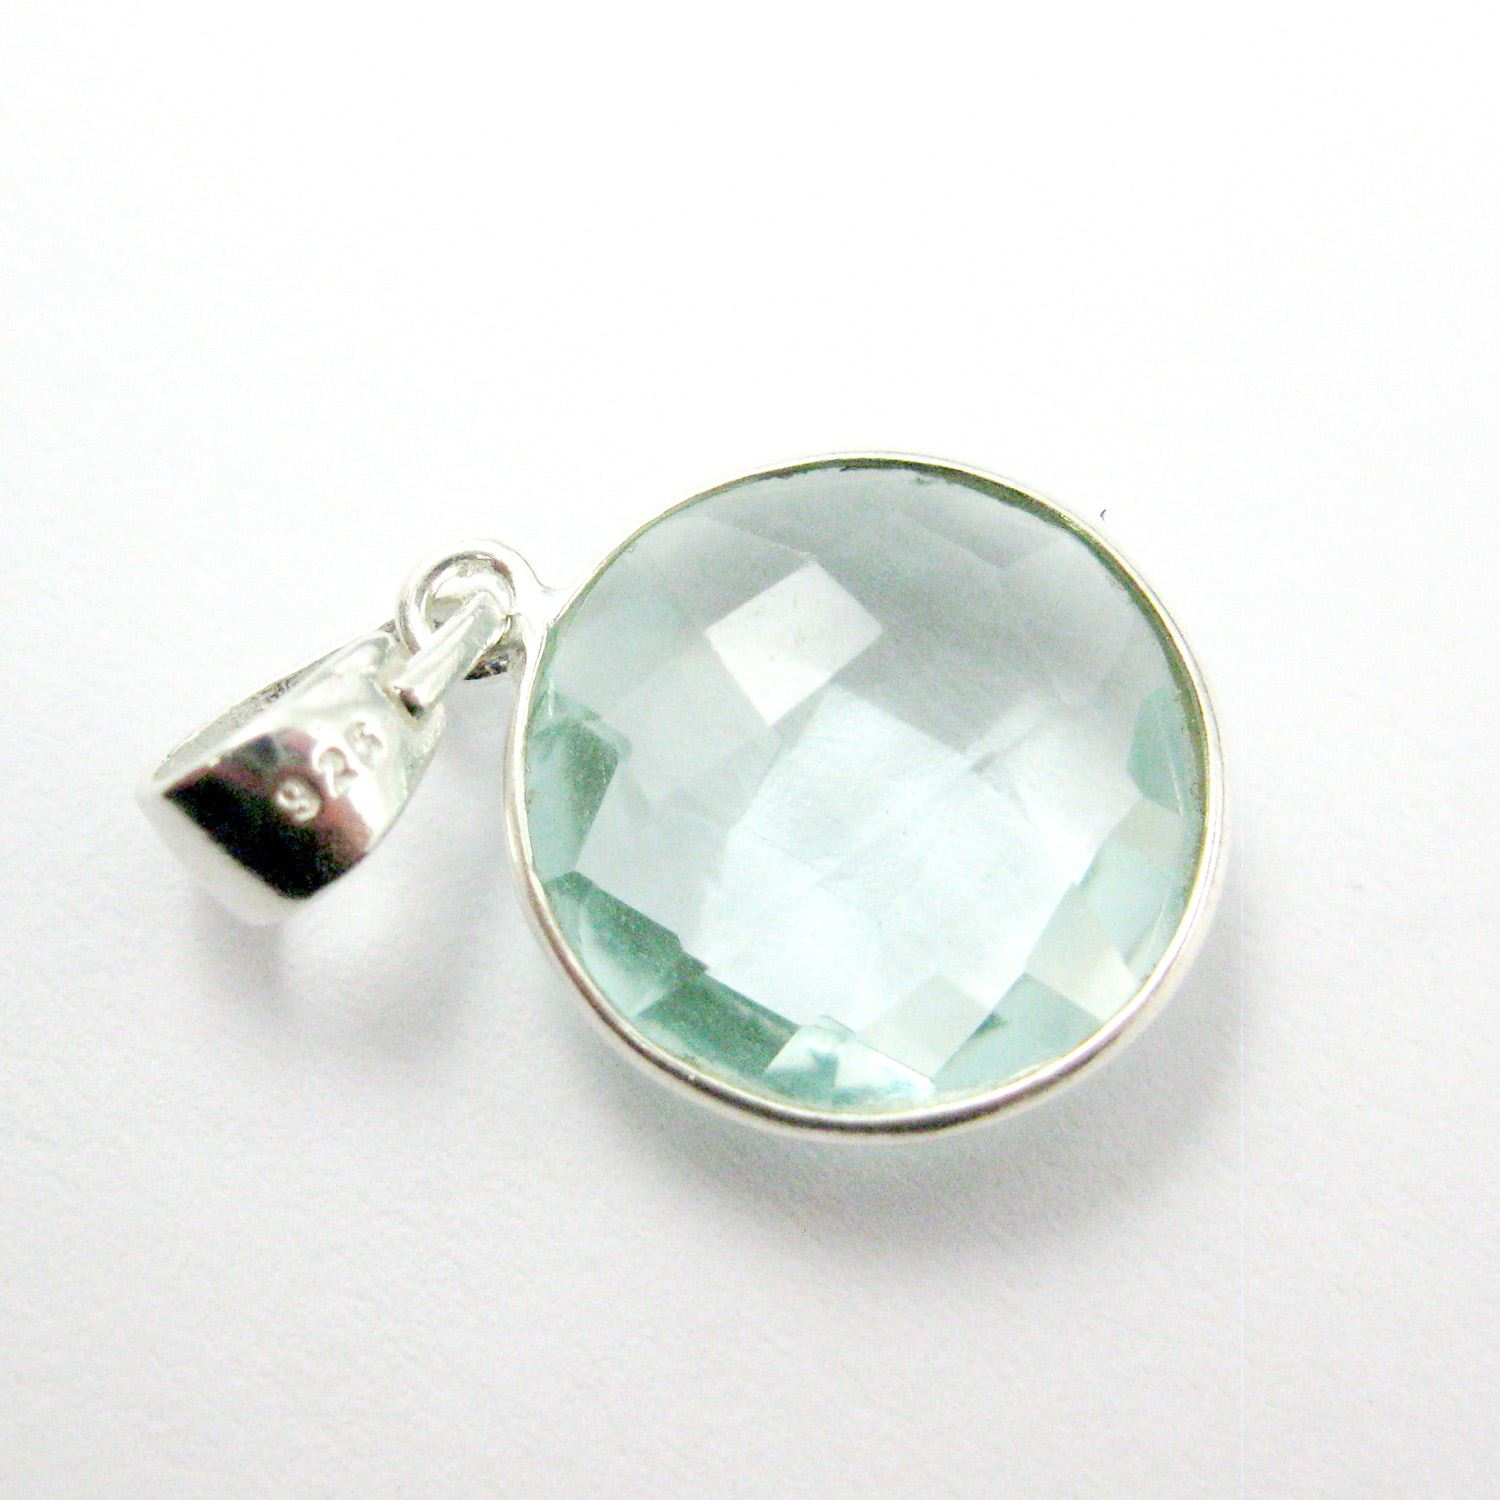 Bezel Gemstone Pendant with Bail - Sterling Silver Round Gem Pendant - Ready for Necklace - 24mm- Aqua Quartz